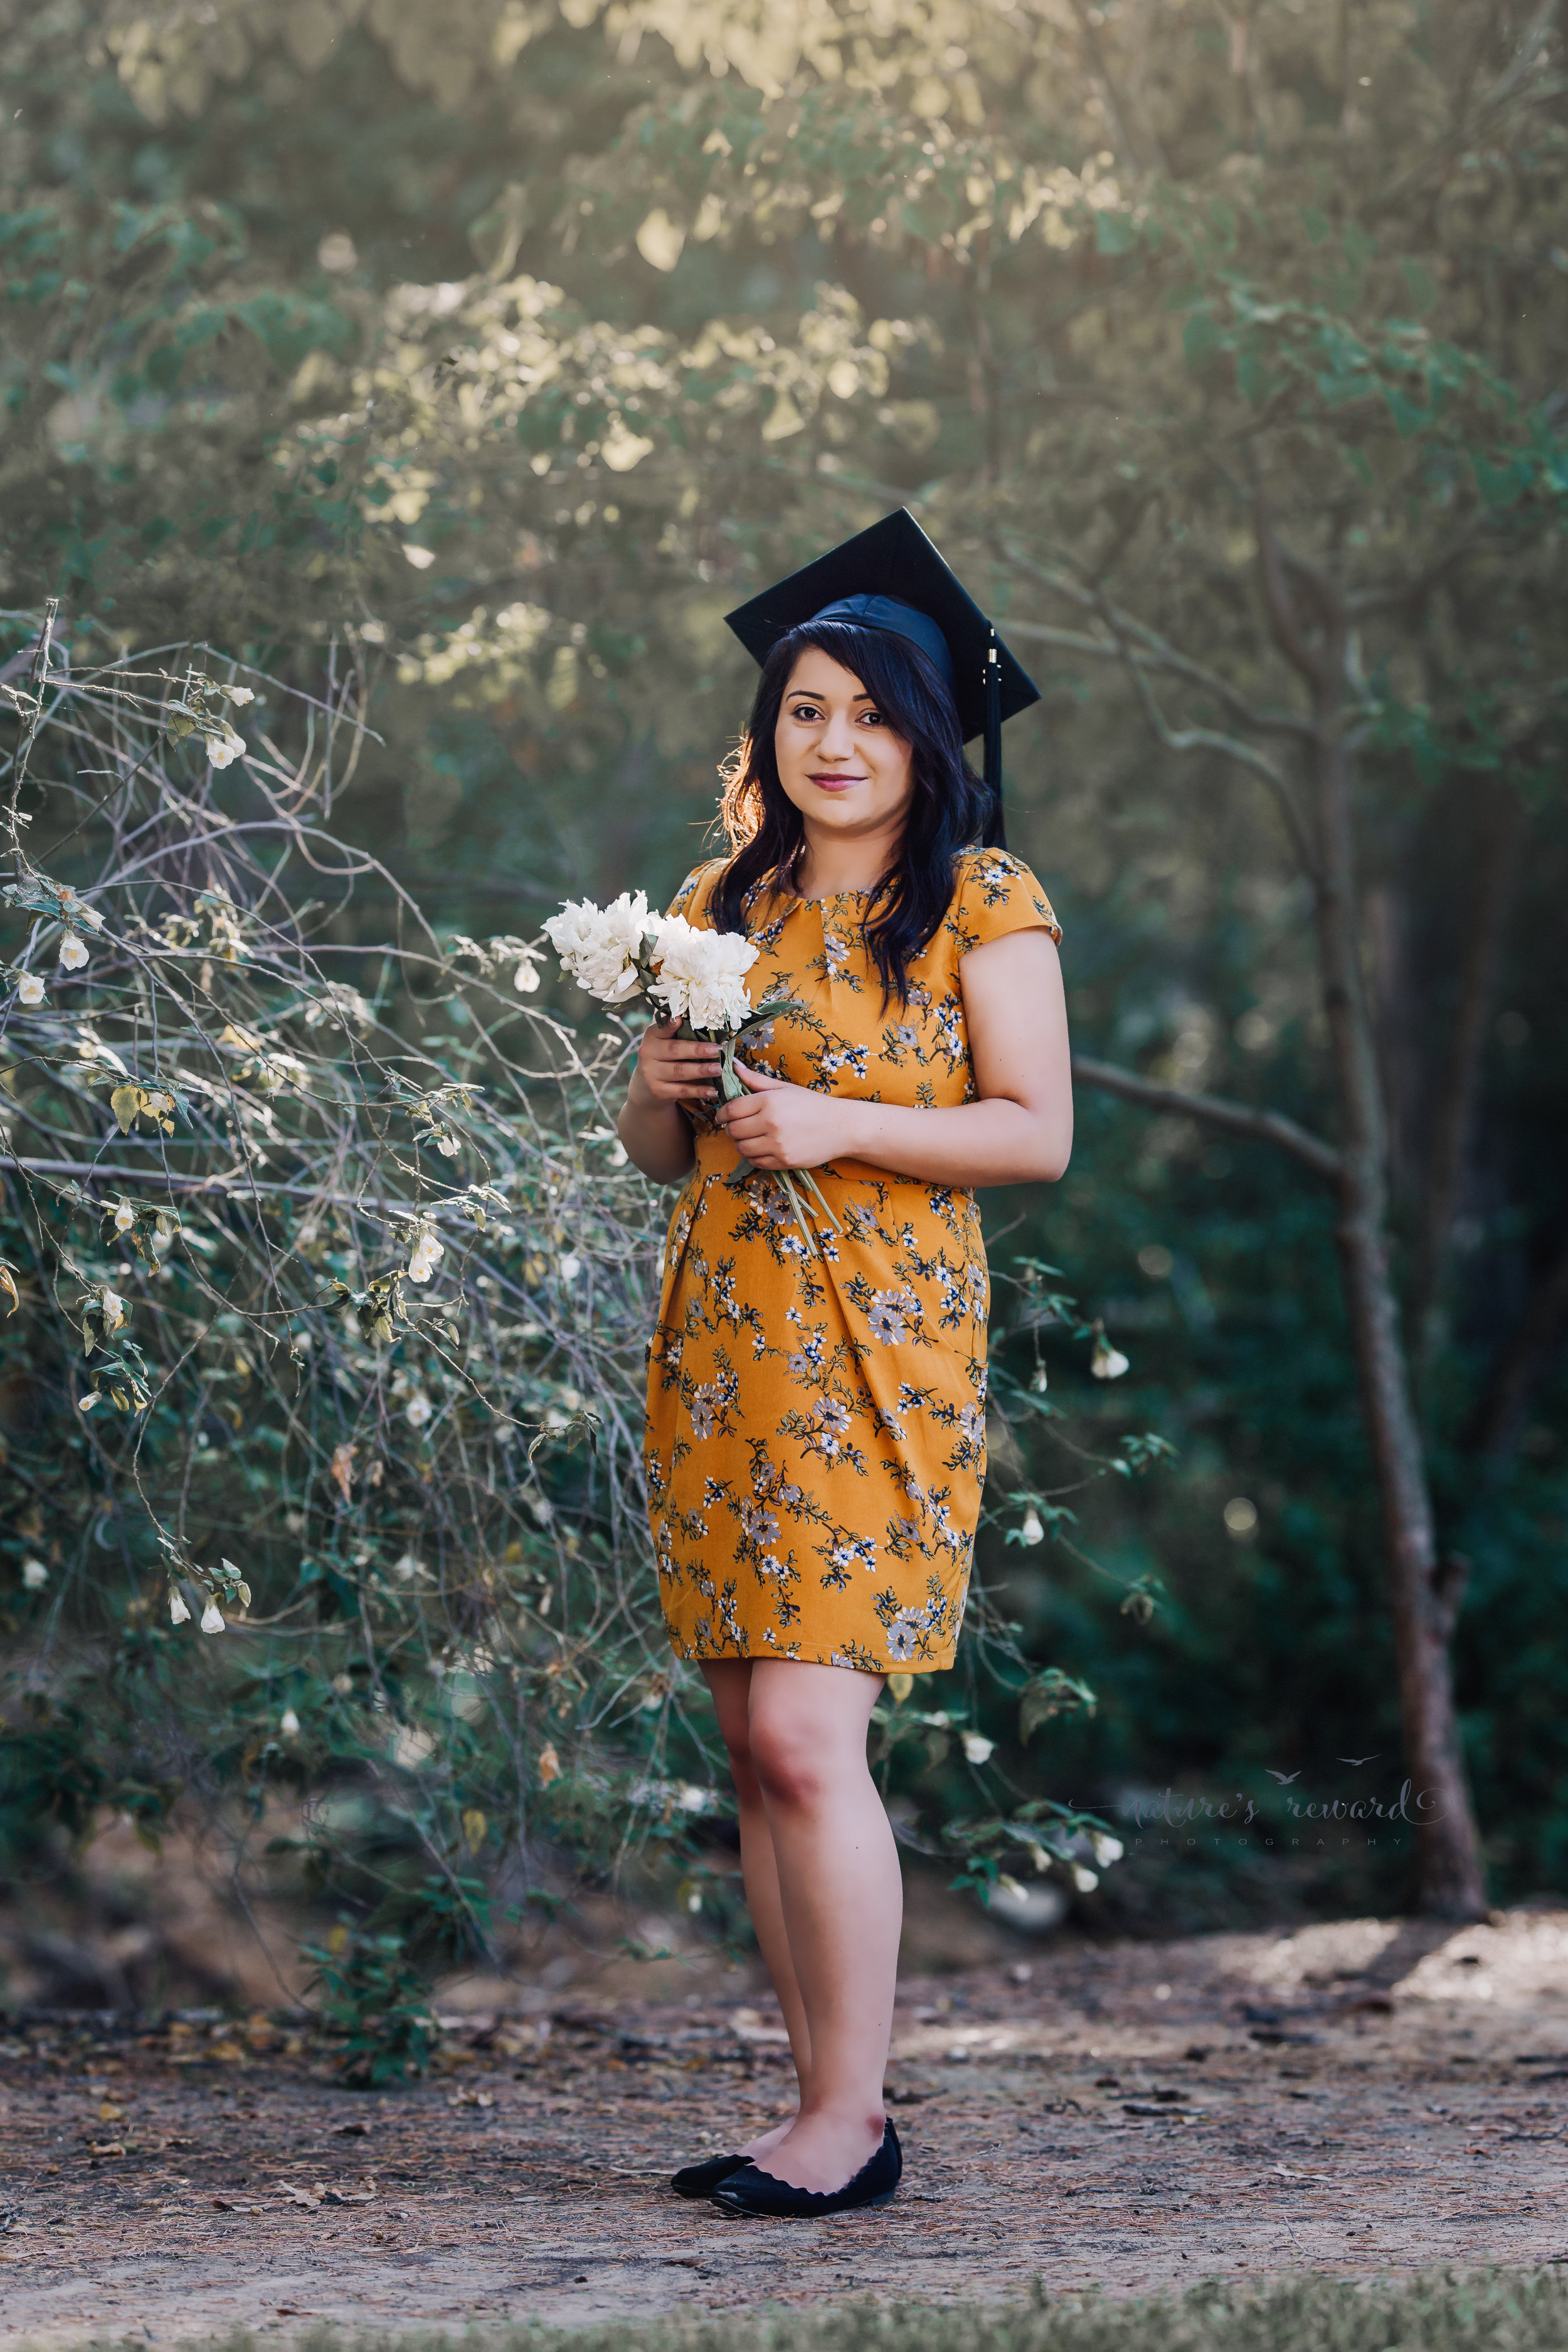 Class of 2018, California State University, San Bernardino Graduate wearing a yellow dress holding flowers surrounded by the lush green of a park in Redlands, California in this Senior Portrait by Nature's Reward Photography.